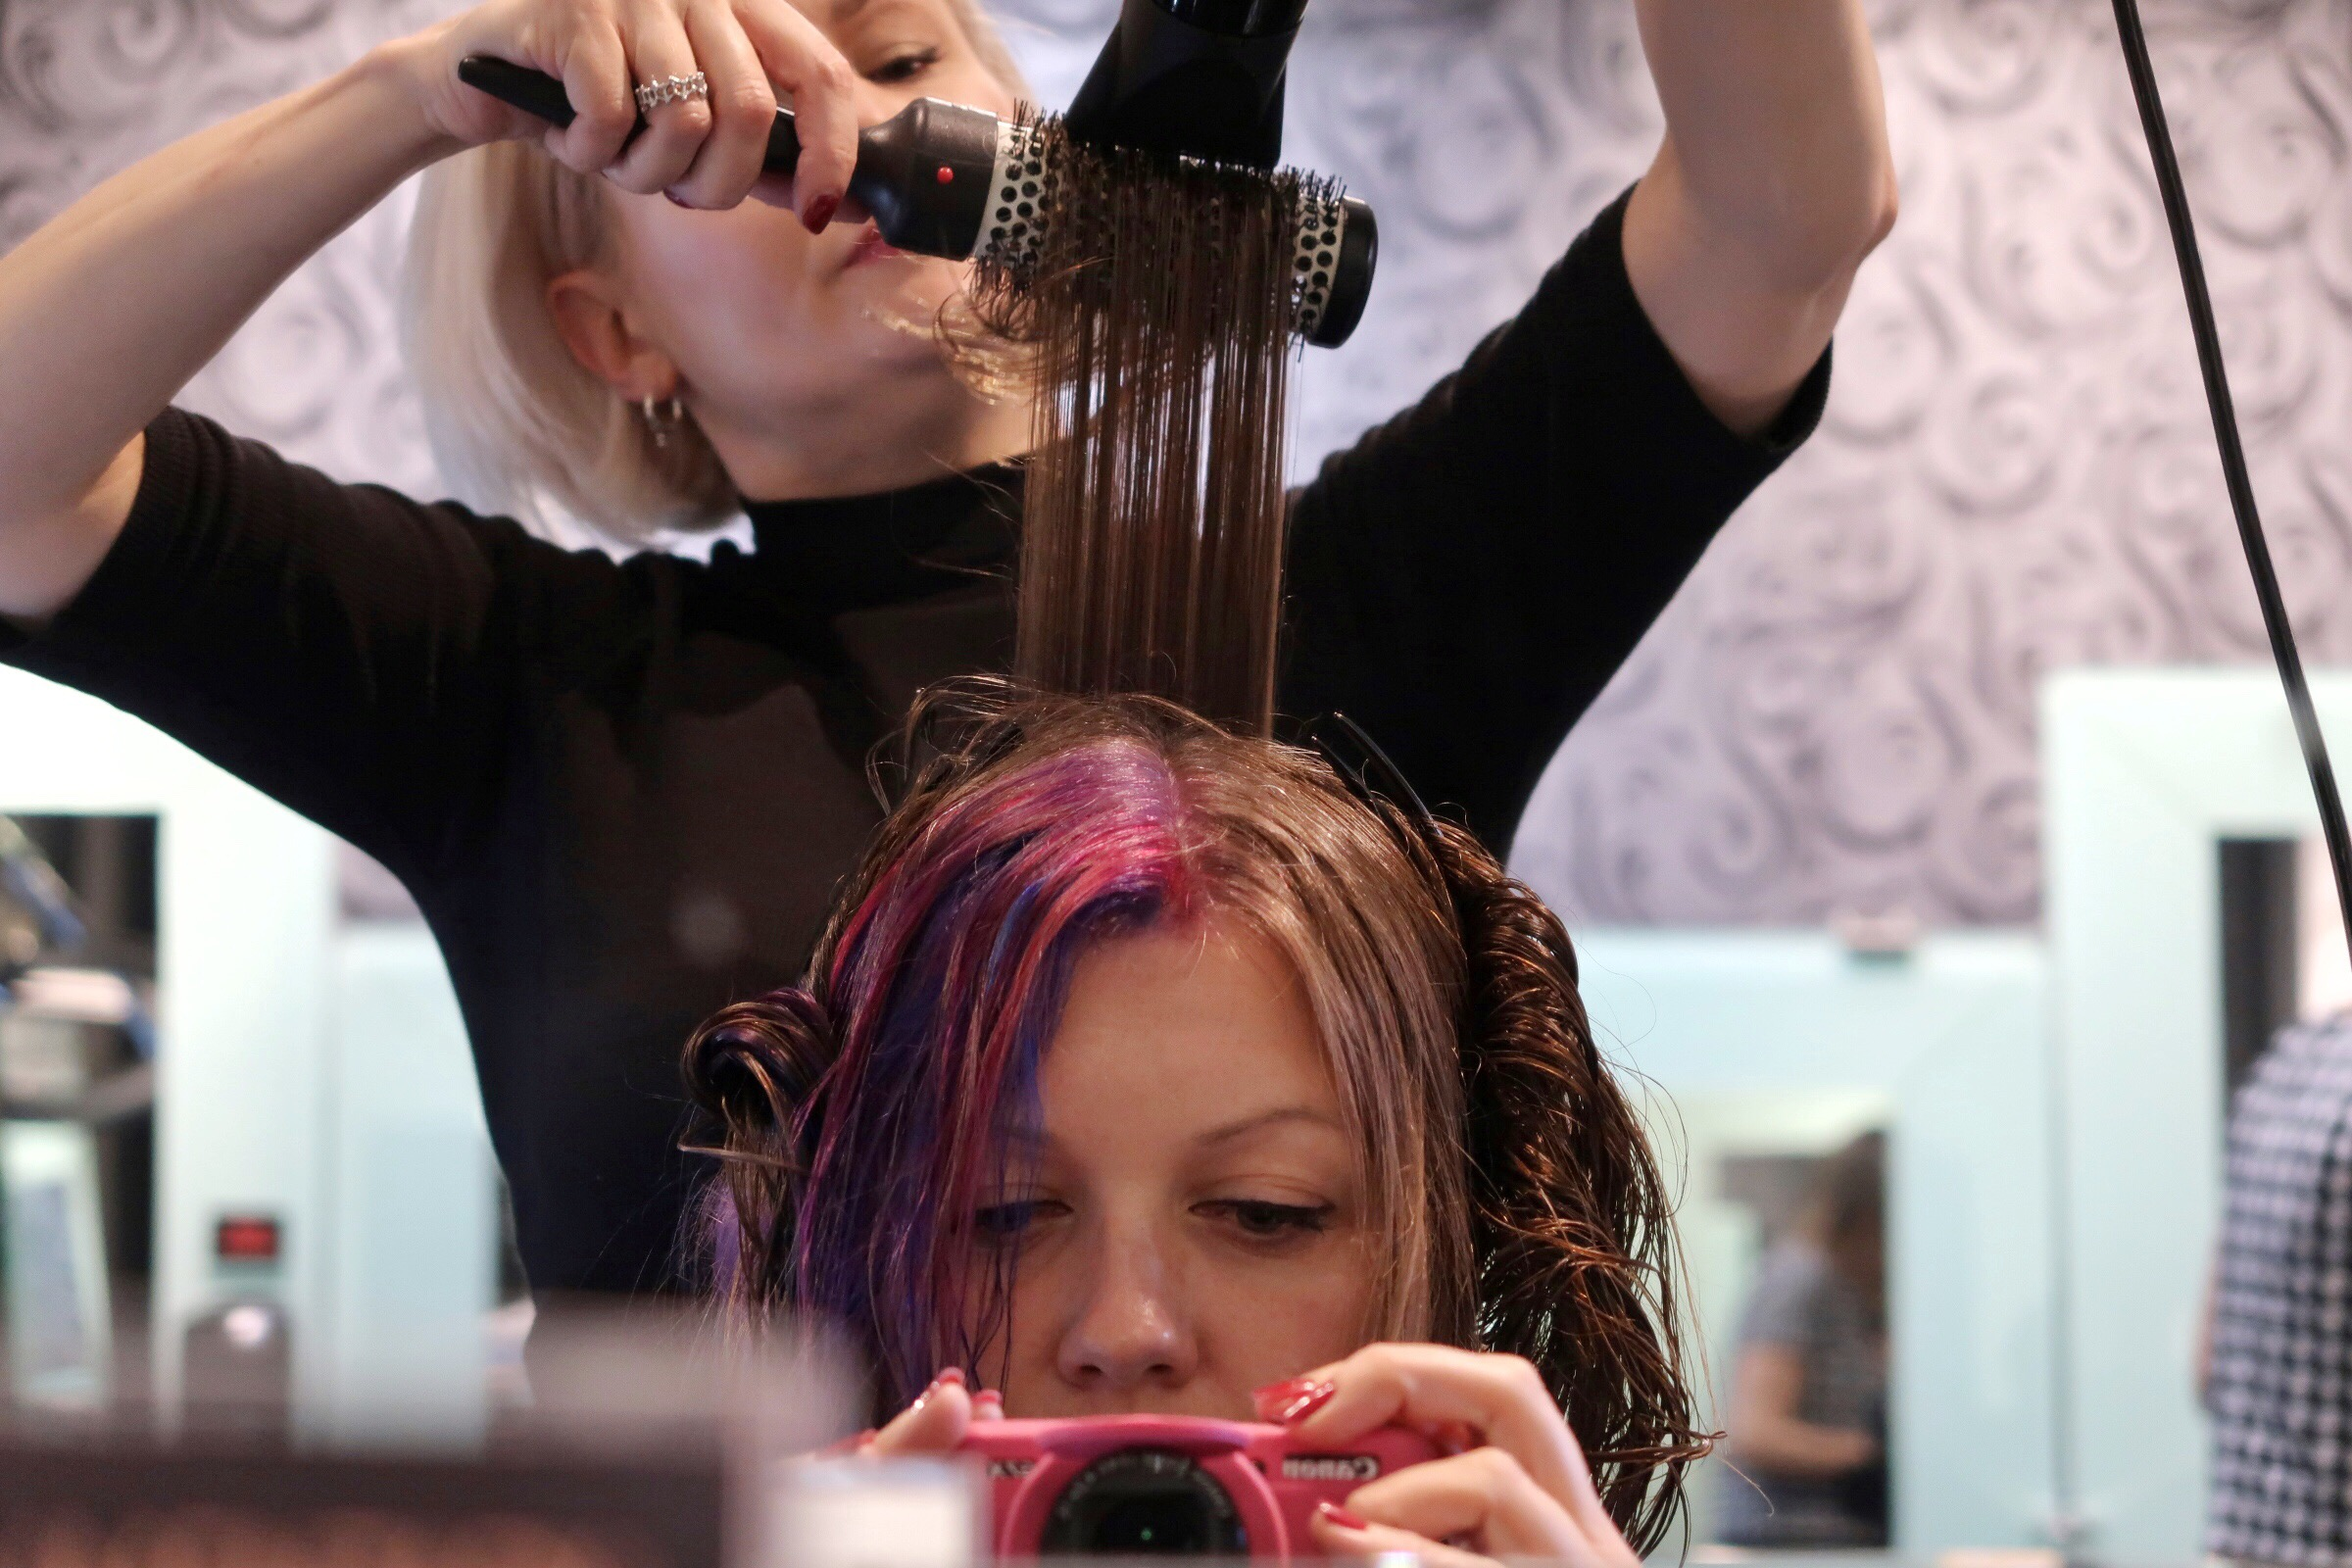 Another mirror shot with my stylist Tash drying my hair with some round brushes in a very fancy way!